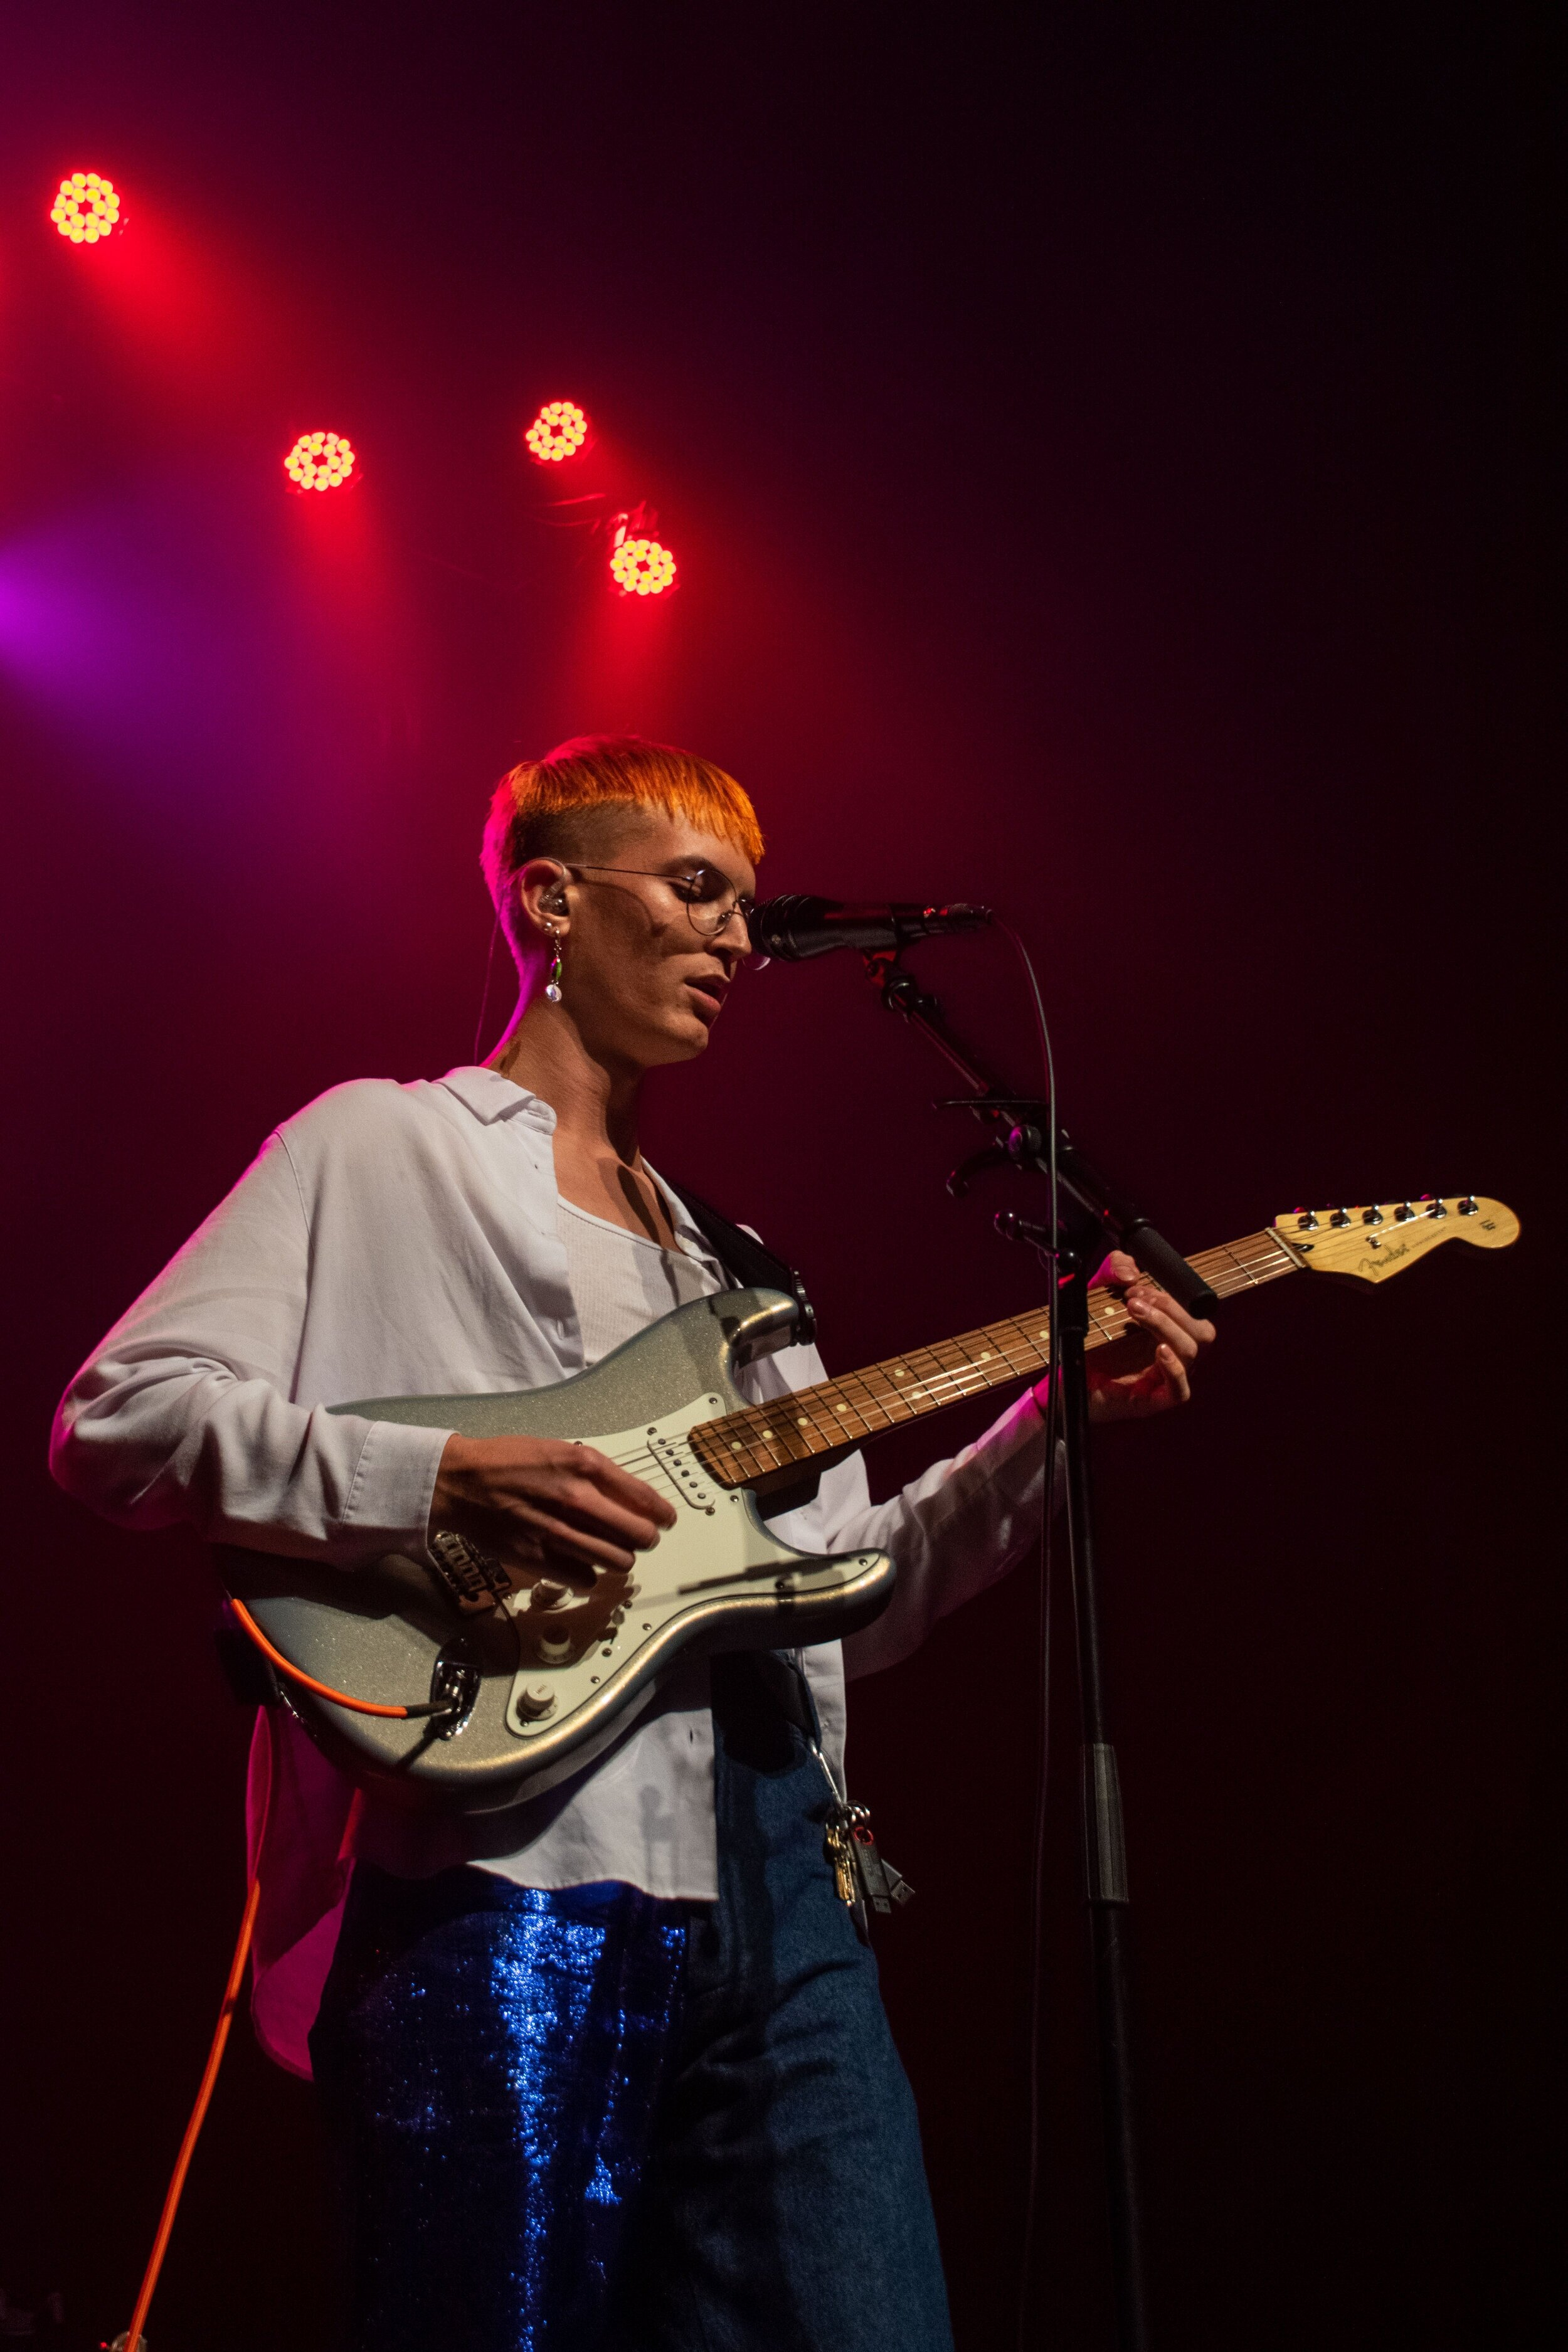 Gus Dapperton embodies a combination of eras and styles in his appearance, musical stylings and stage presence at The Fonda in Hollywood, Calif. on Oct. 15, 2019. ( Jackie Sedley / Culture Editor)